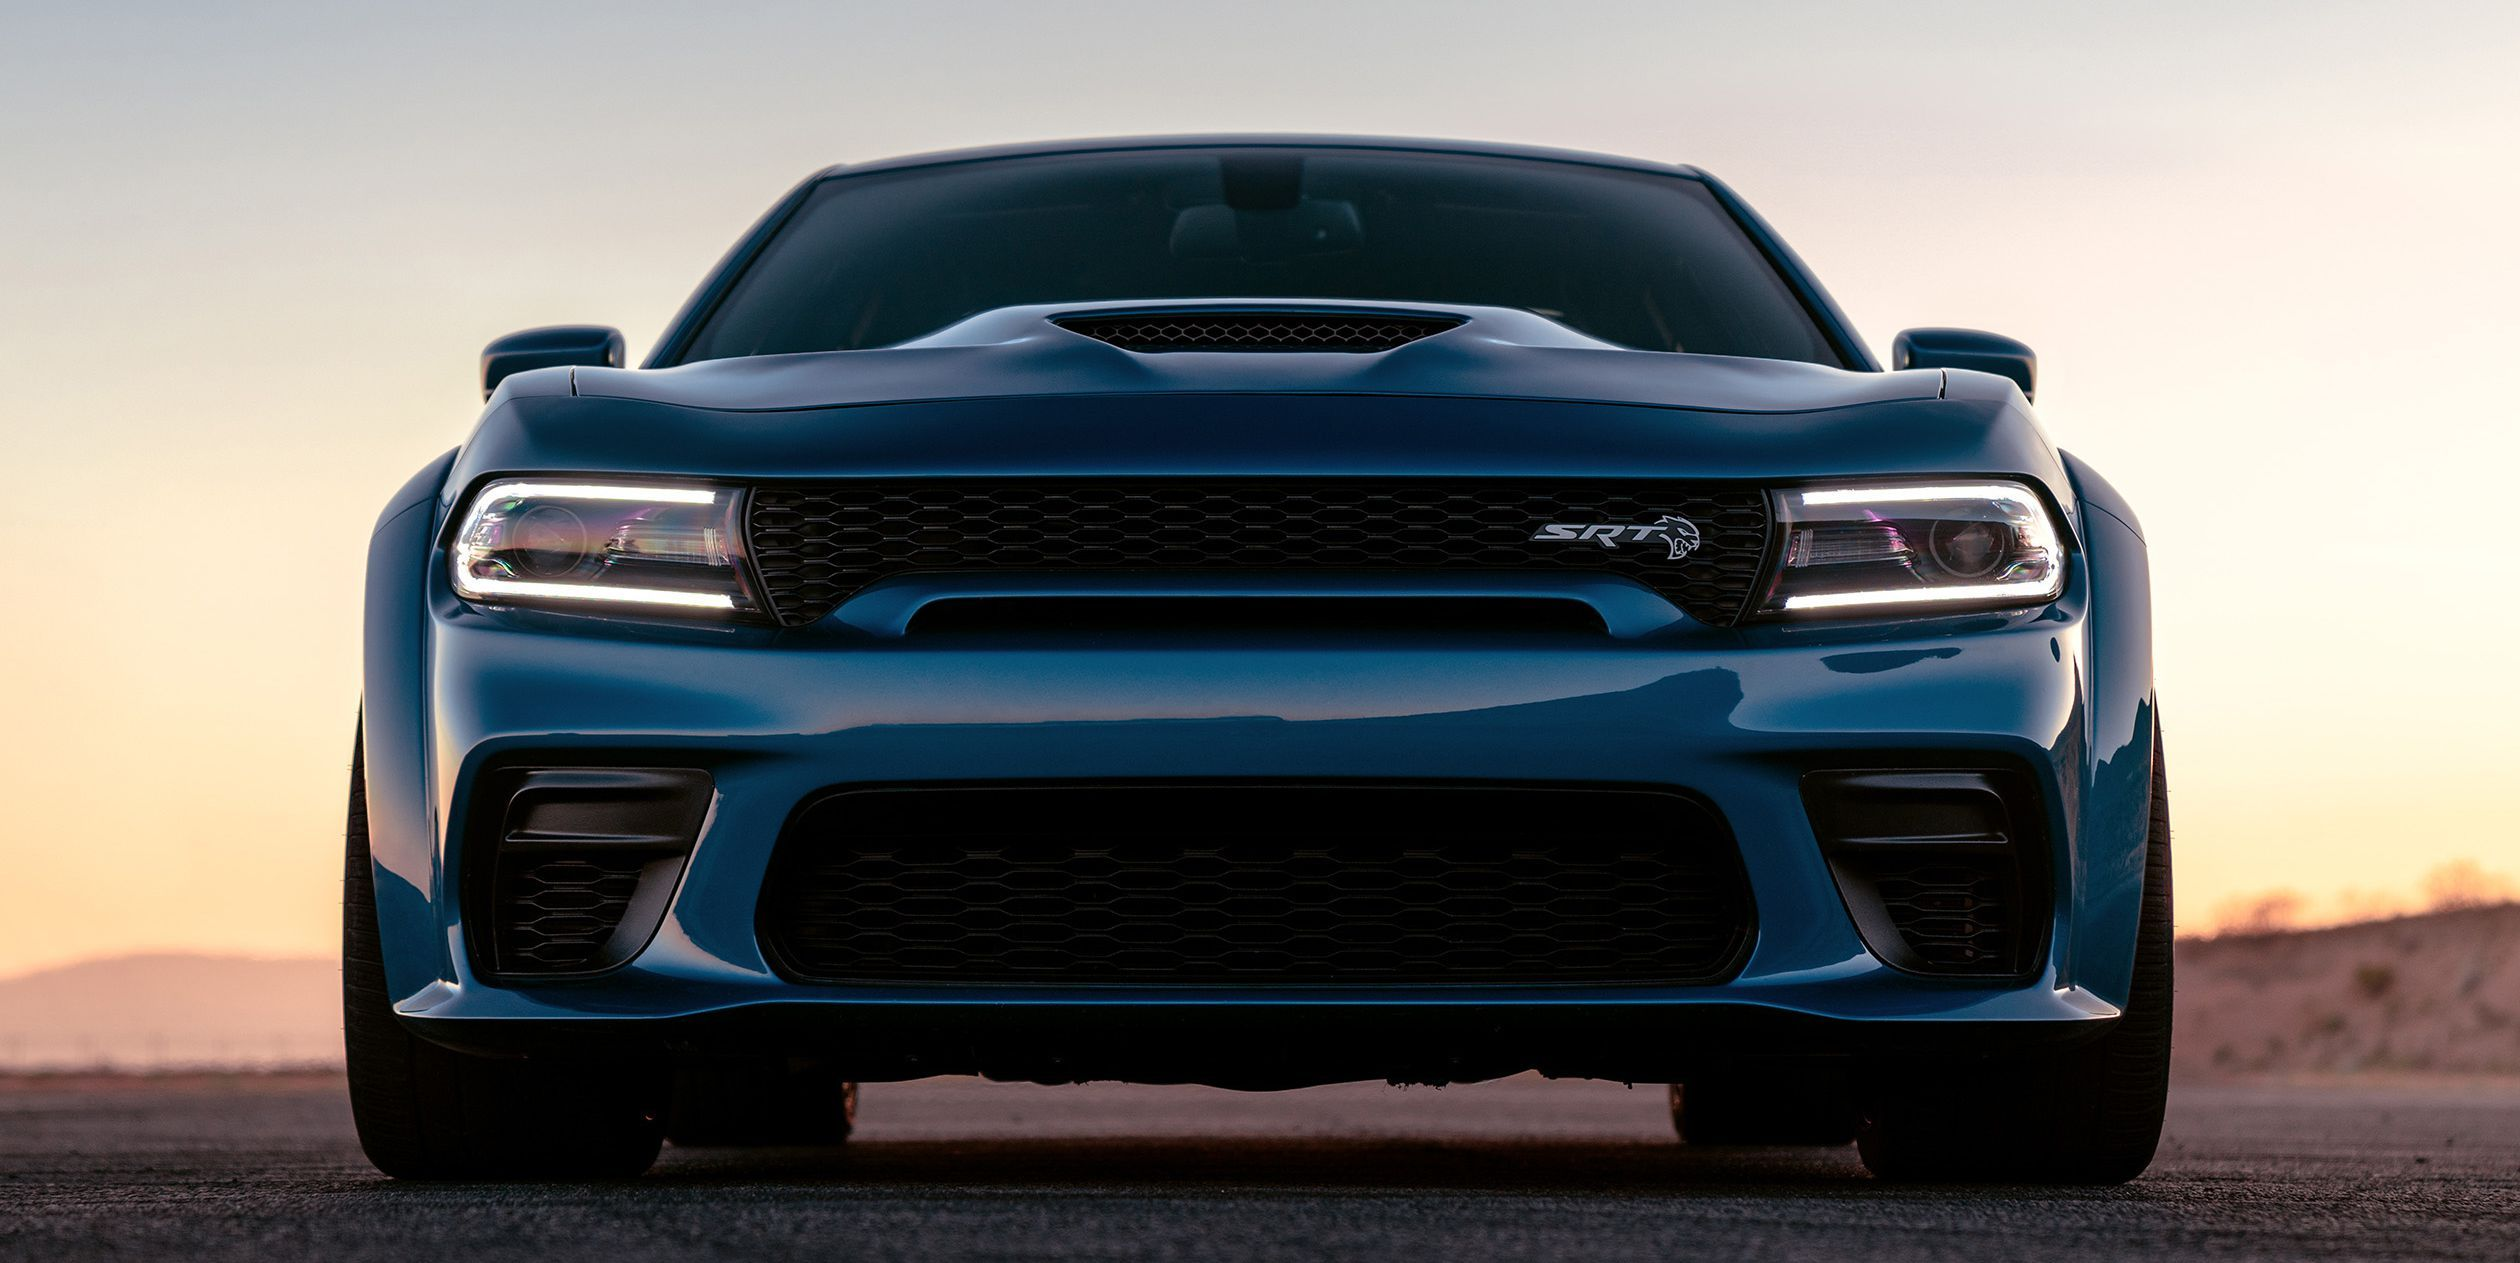 The 2020 Dodge Charger Srt Hellcat Widebody Is A Monster Sedan